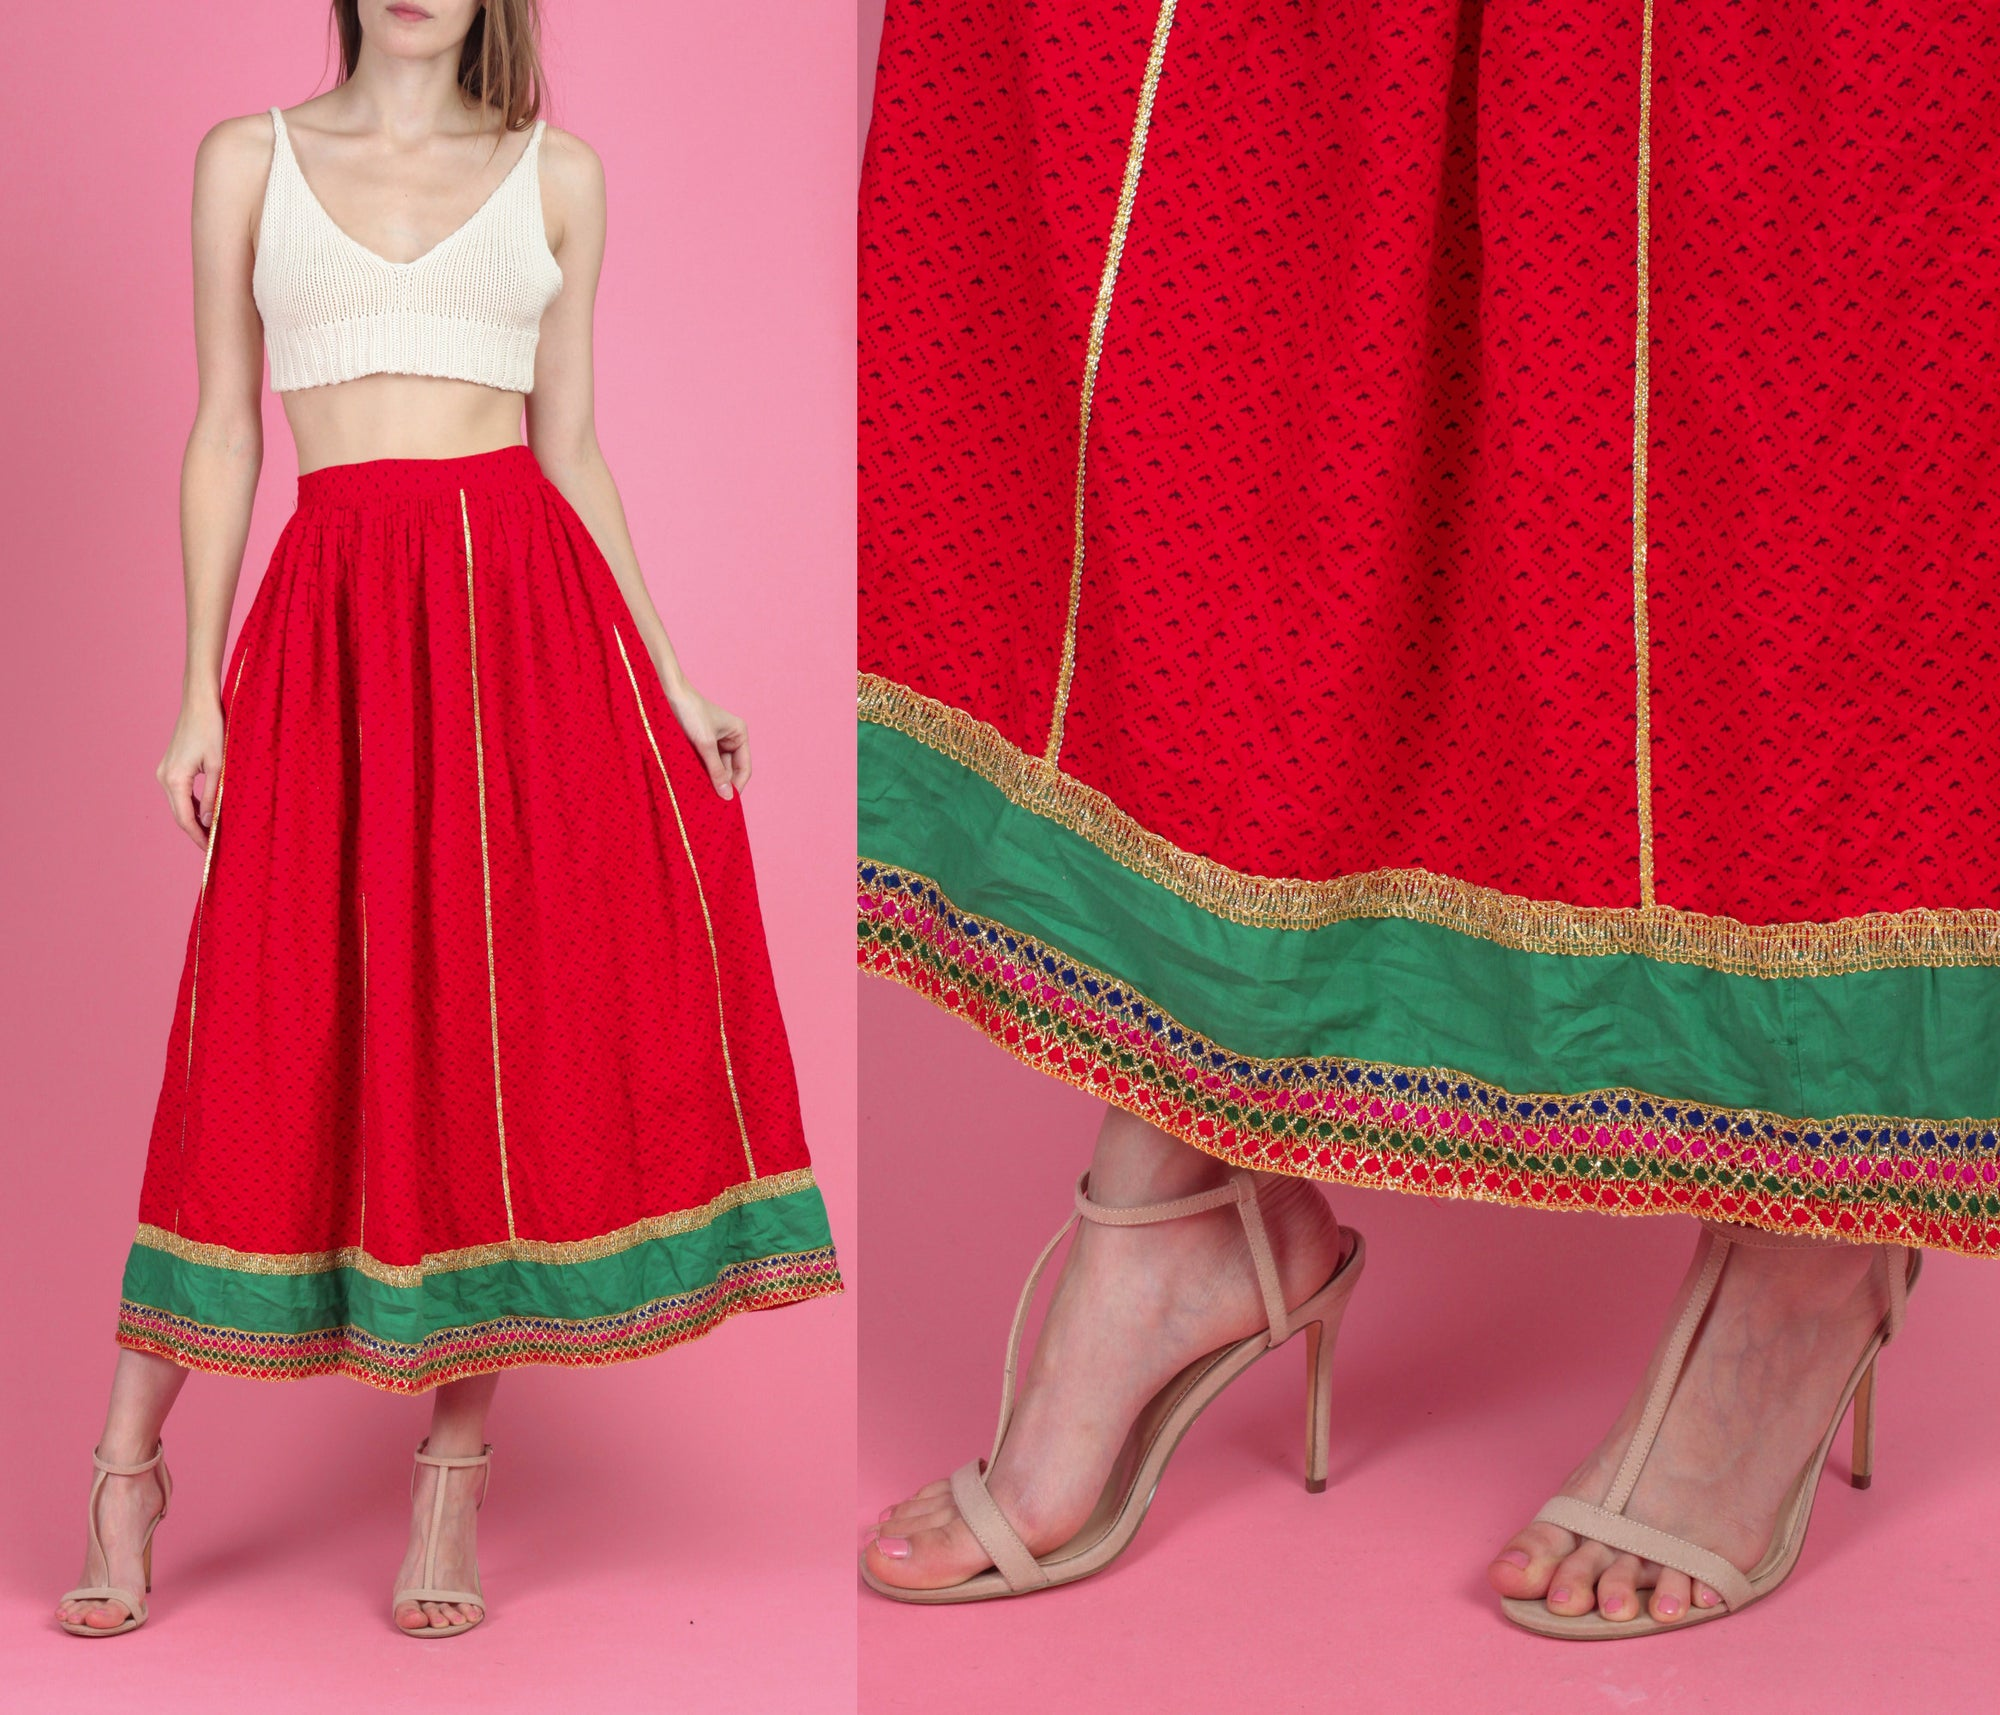 Vintage Indian Red Metallic Trim Skirt - Medium